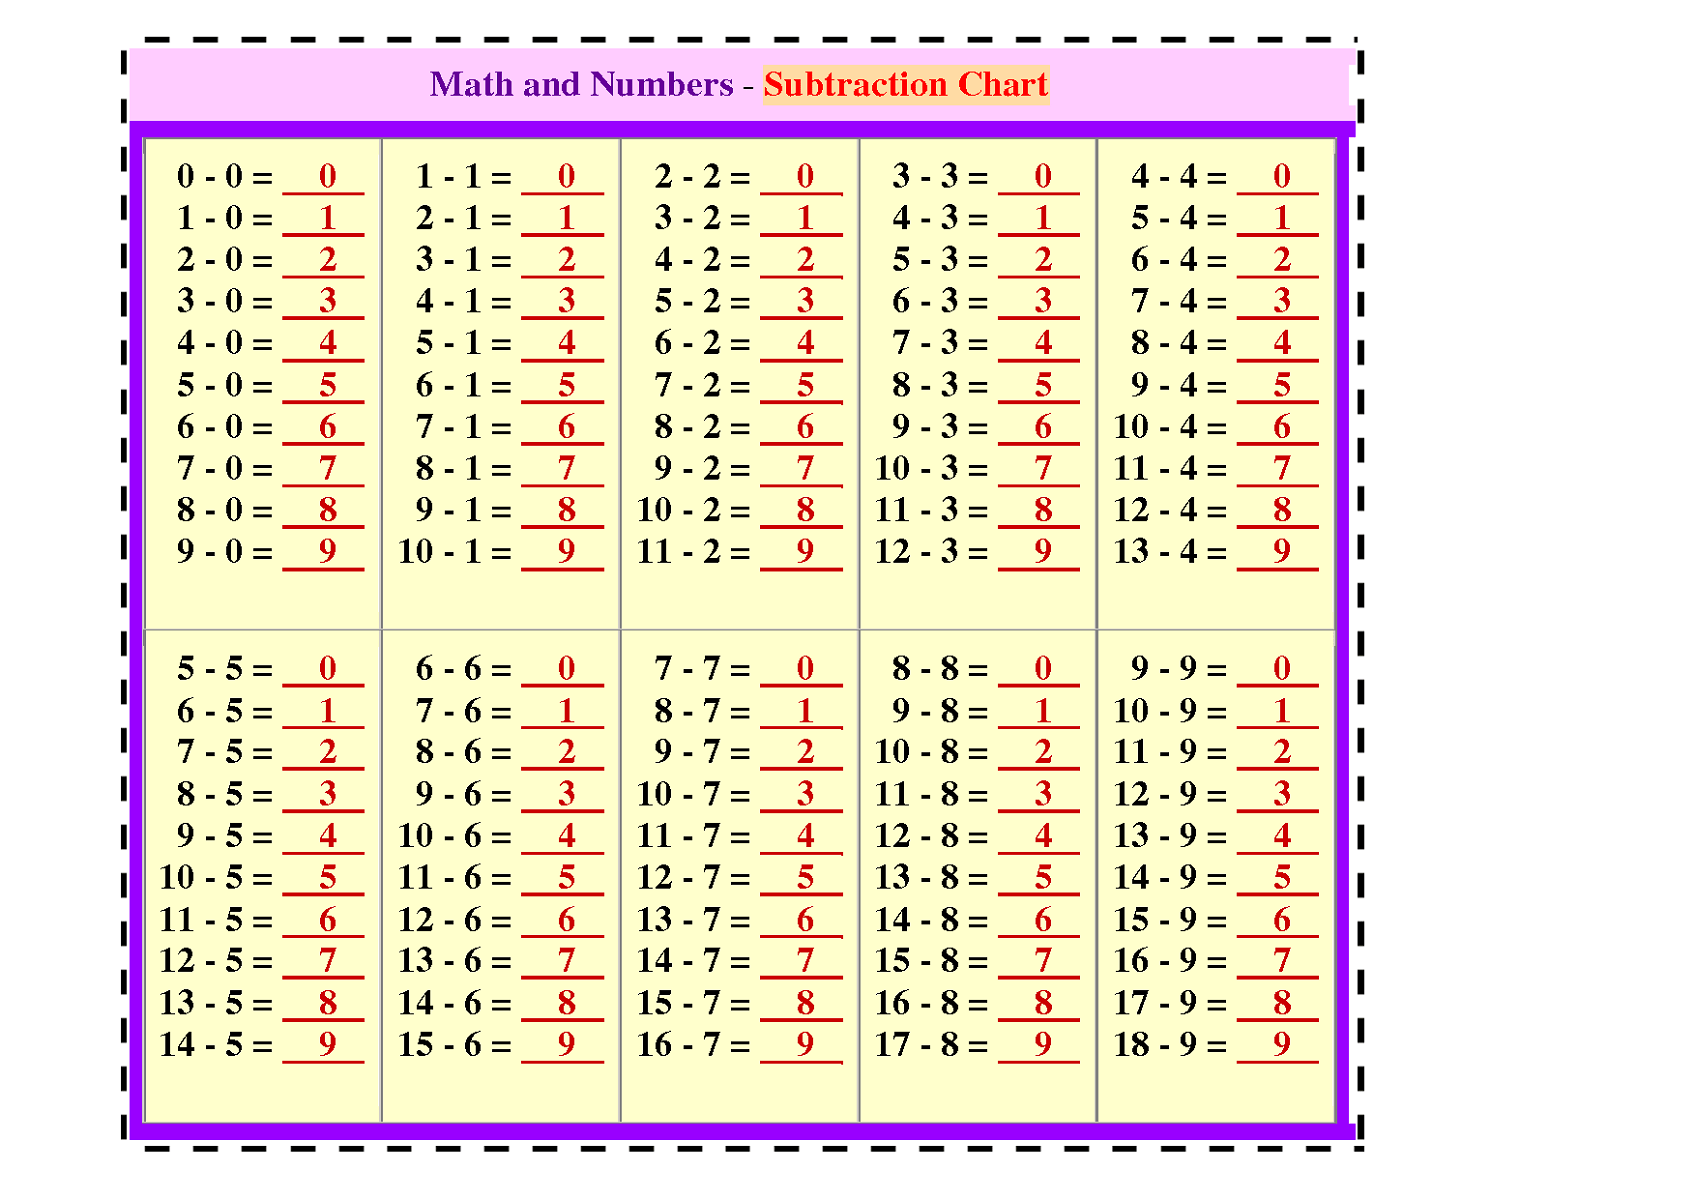 Multiplication Table Periodic Table